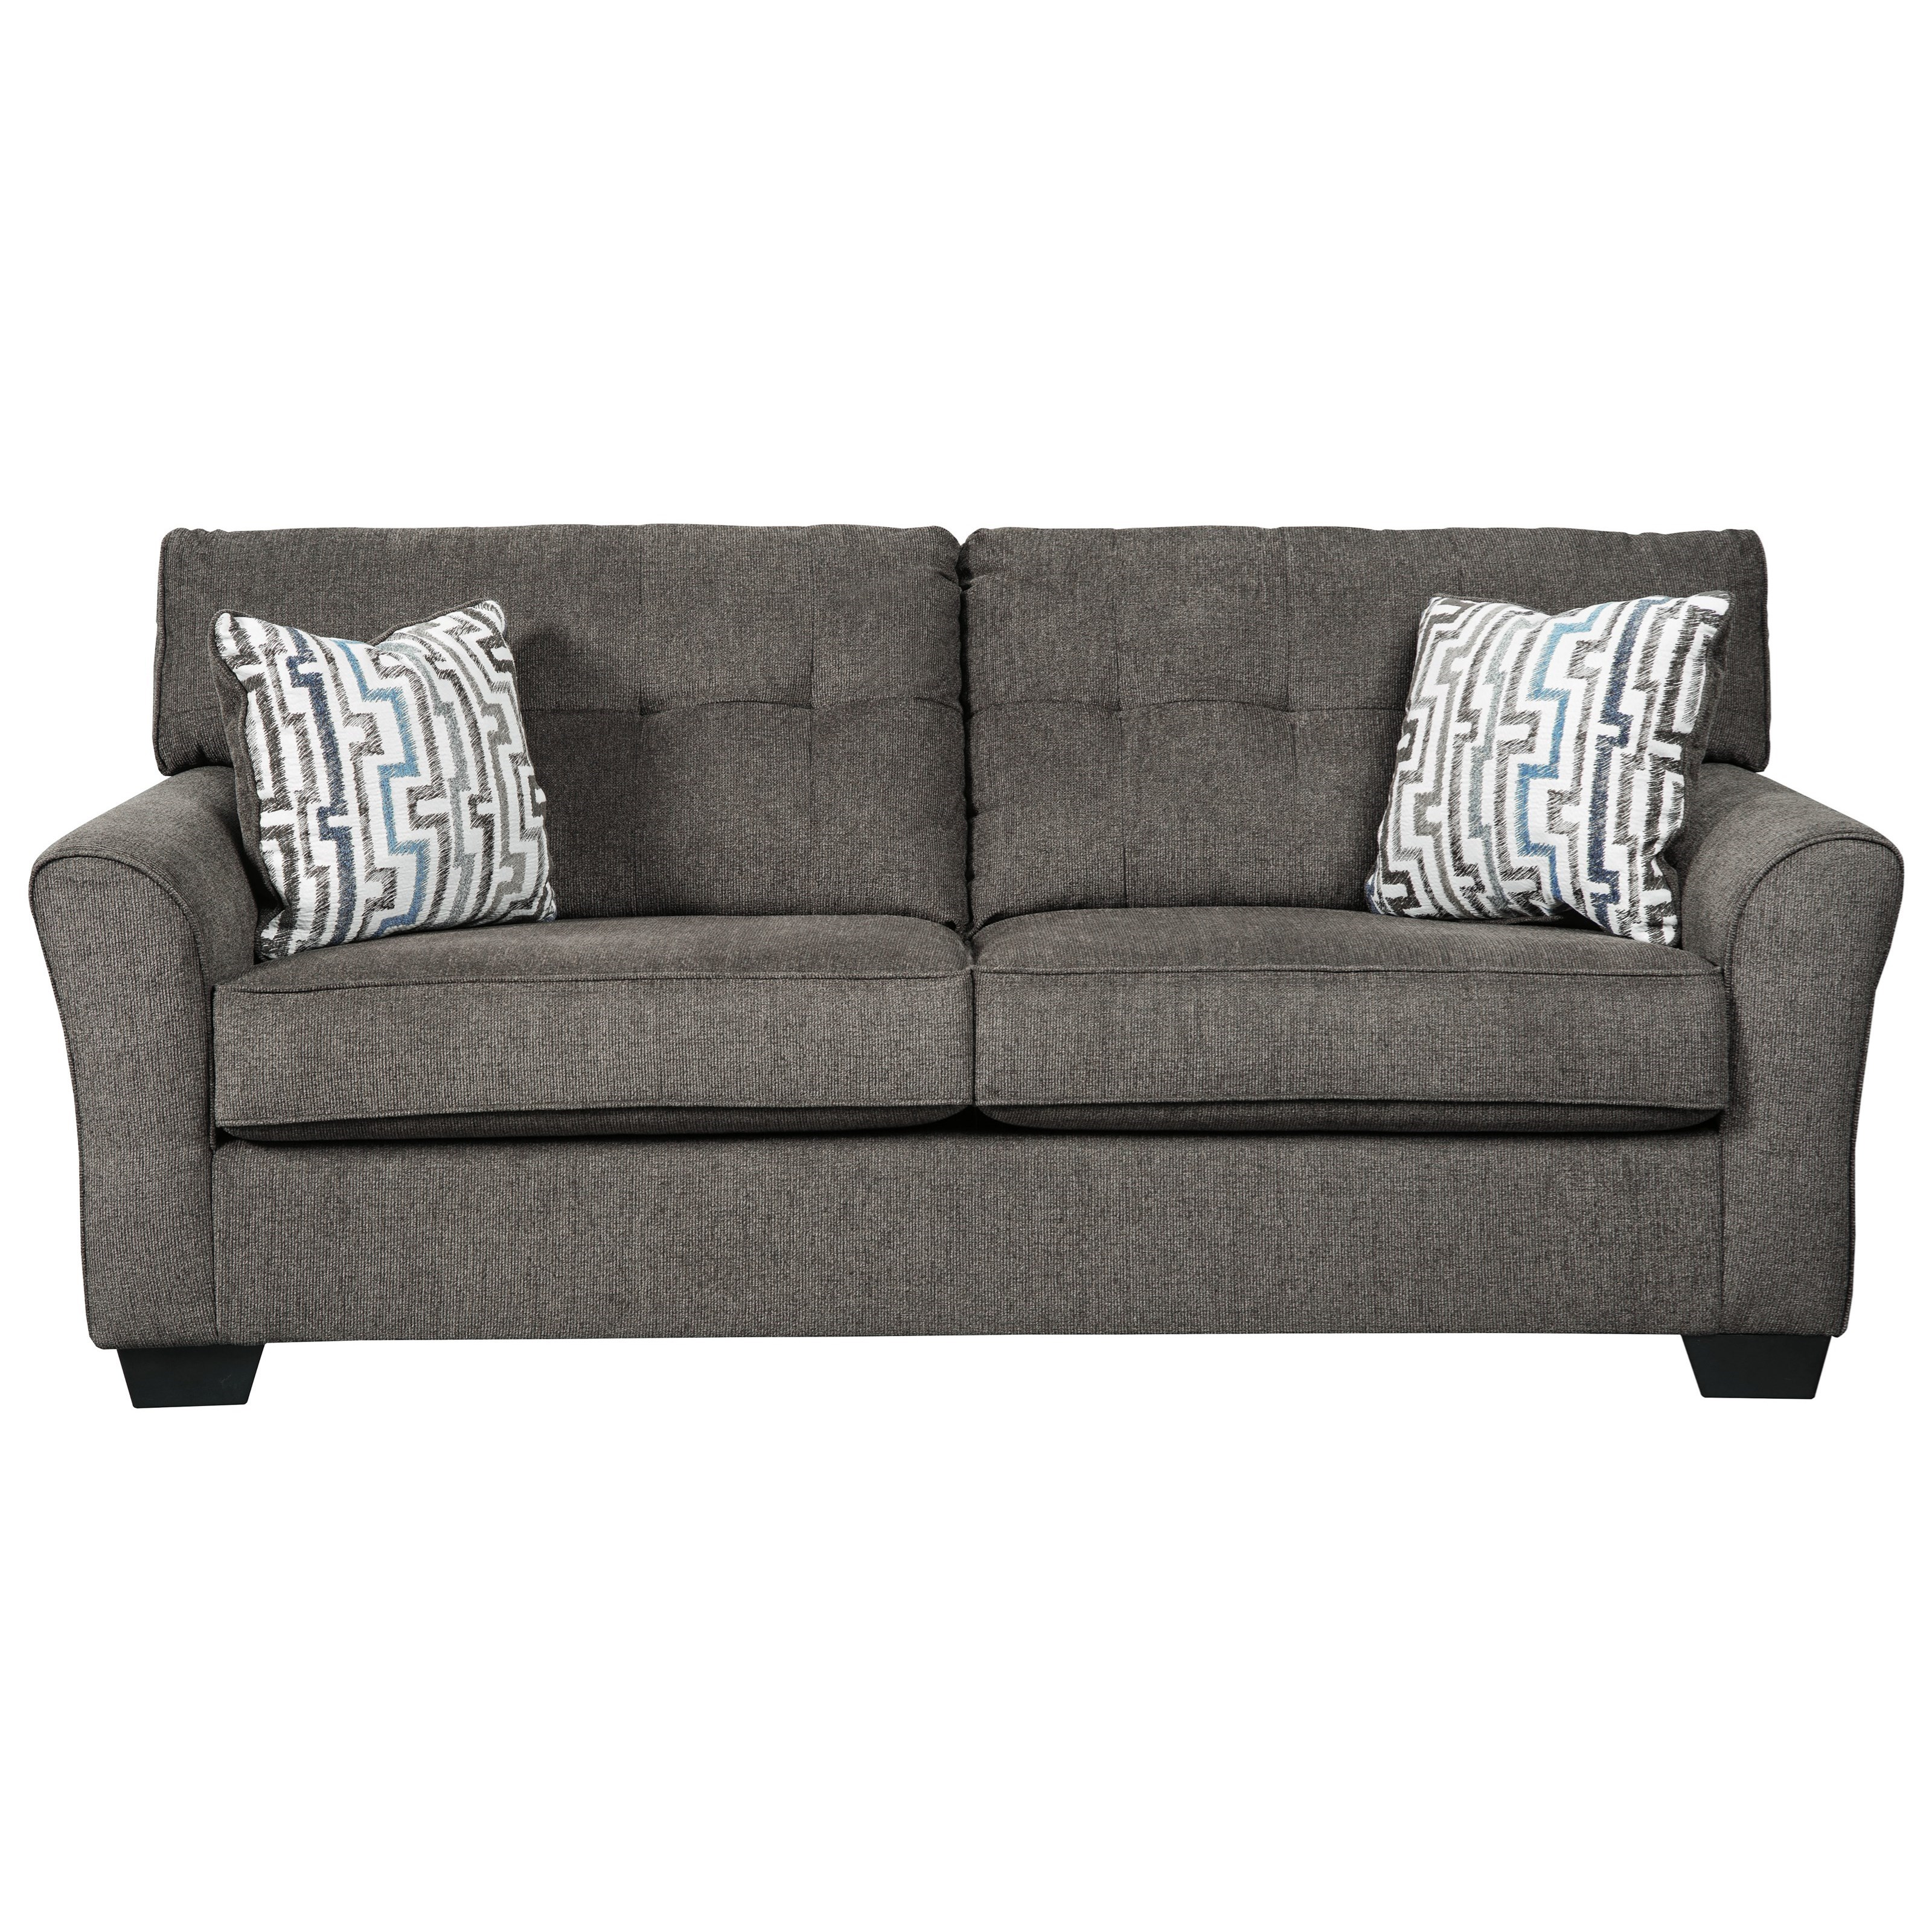 Alsen Sofa by Benchcraft at Beck's Furniture